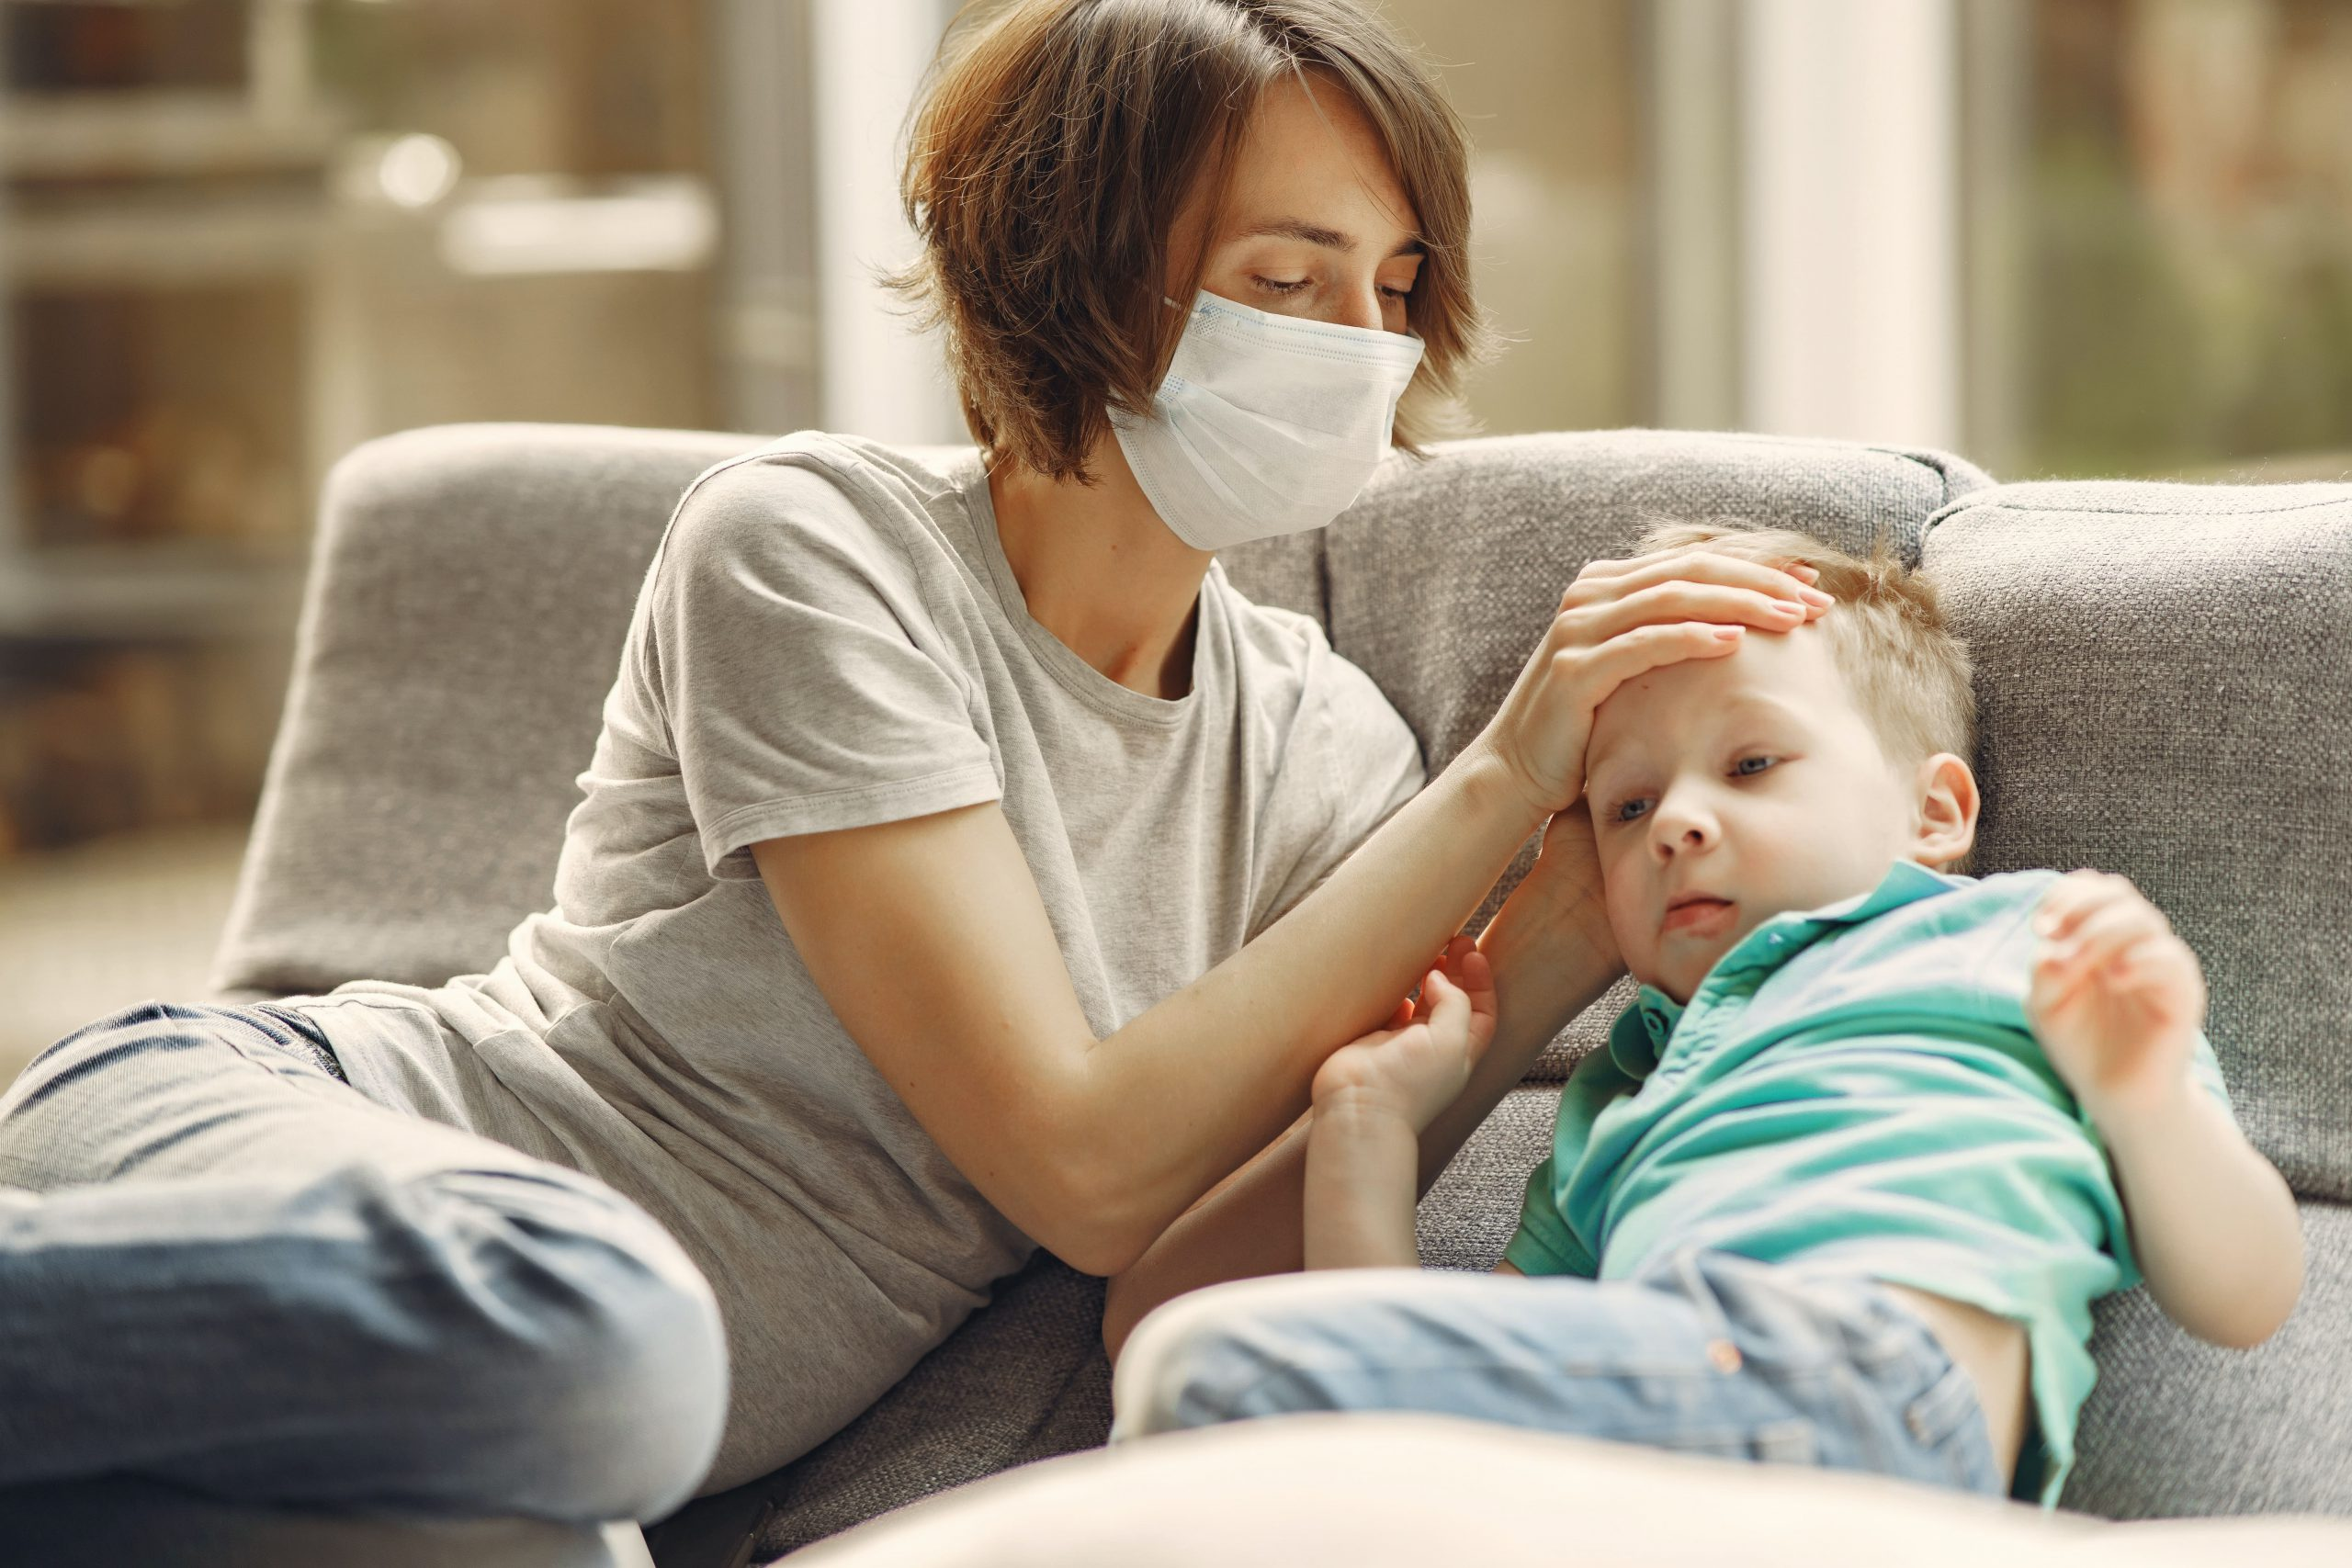 mother-and-sick-child